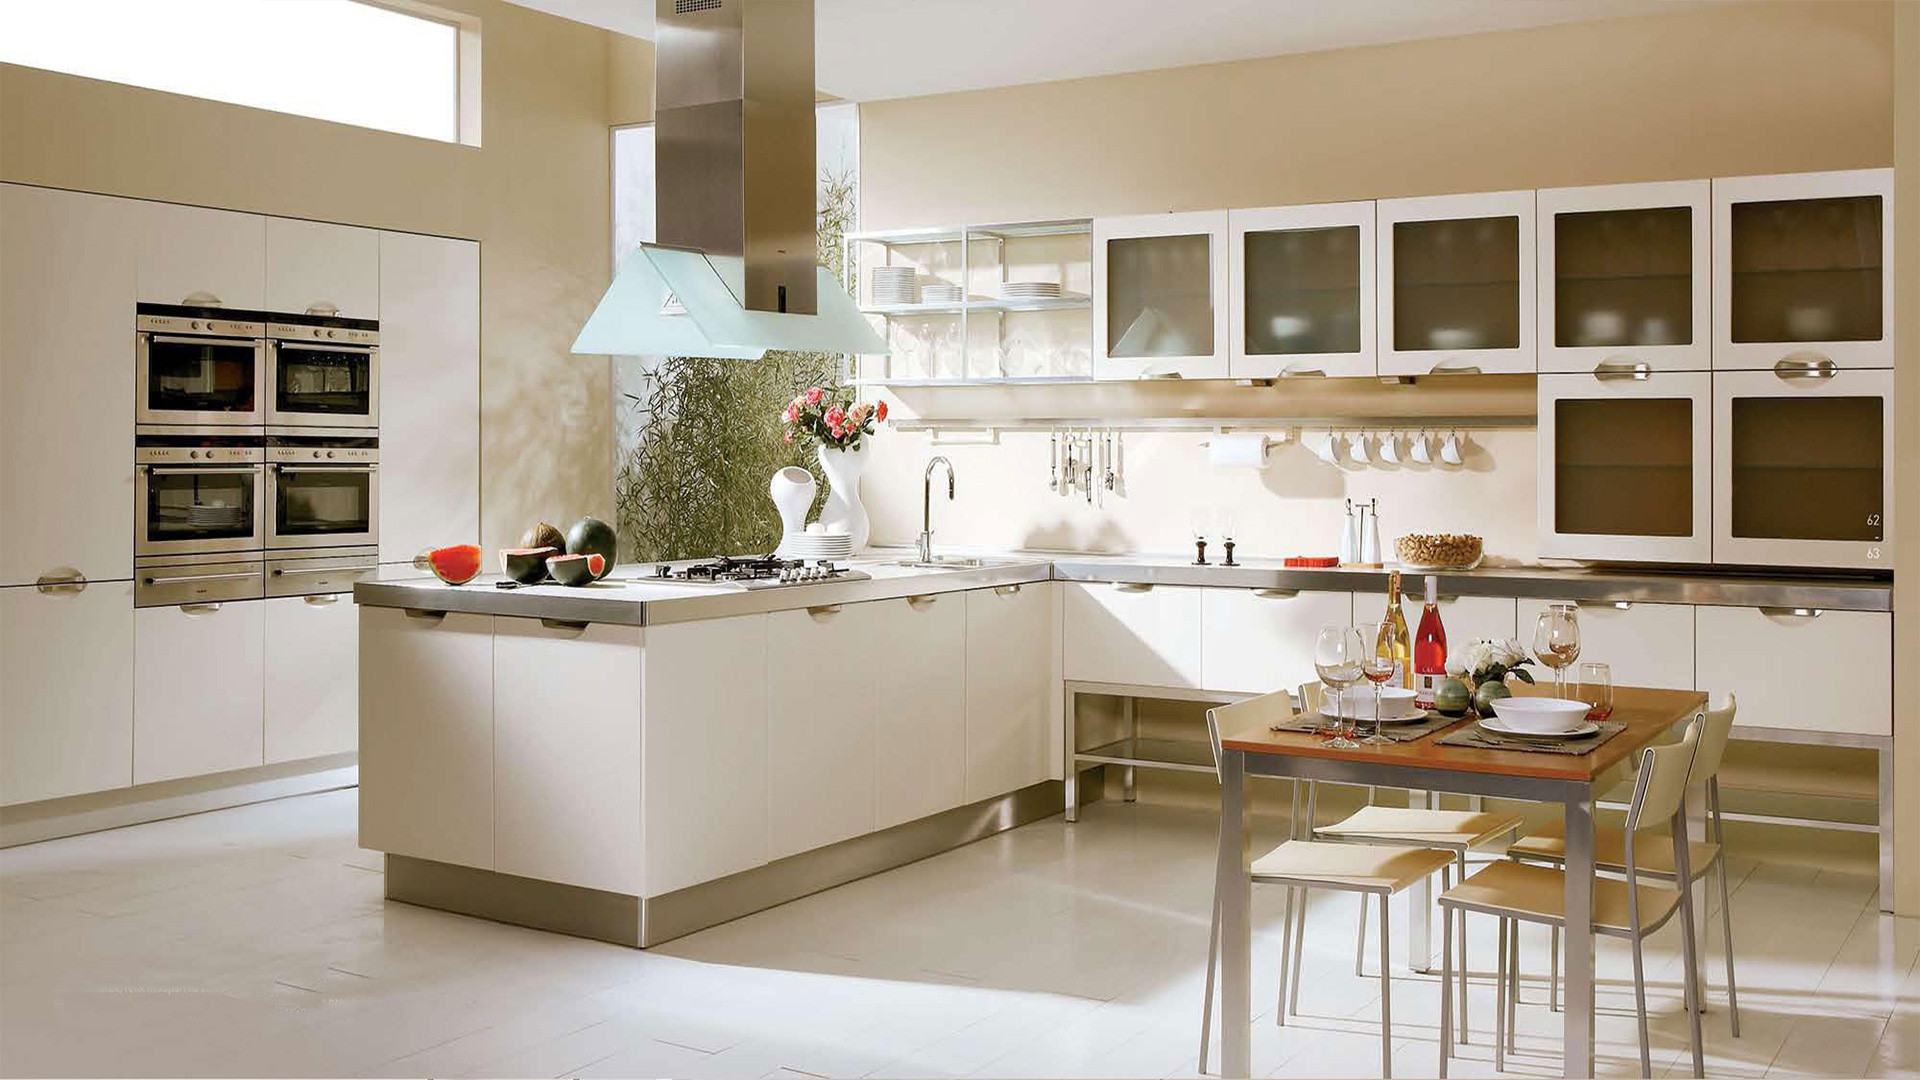 What Should We Pay Attention To When Buying Kitchen Furniture?